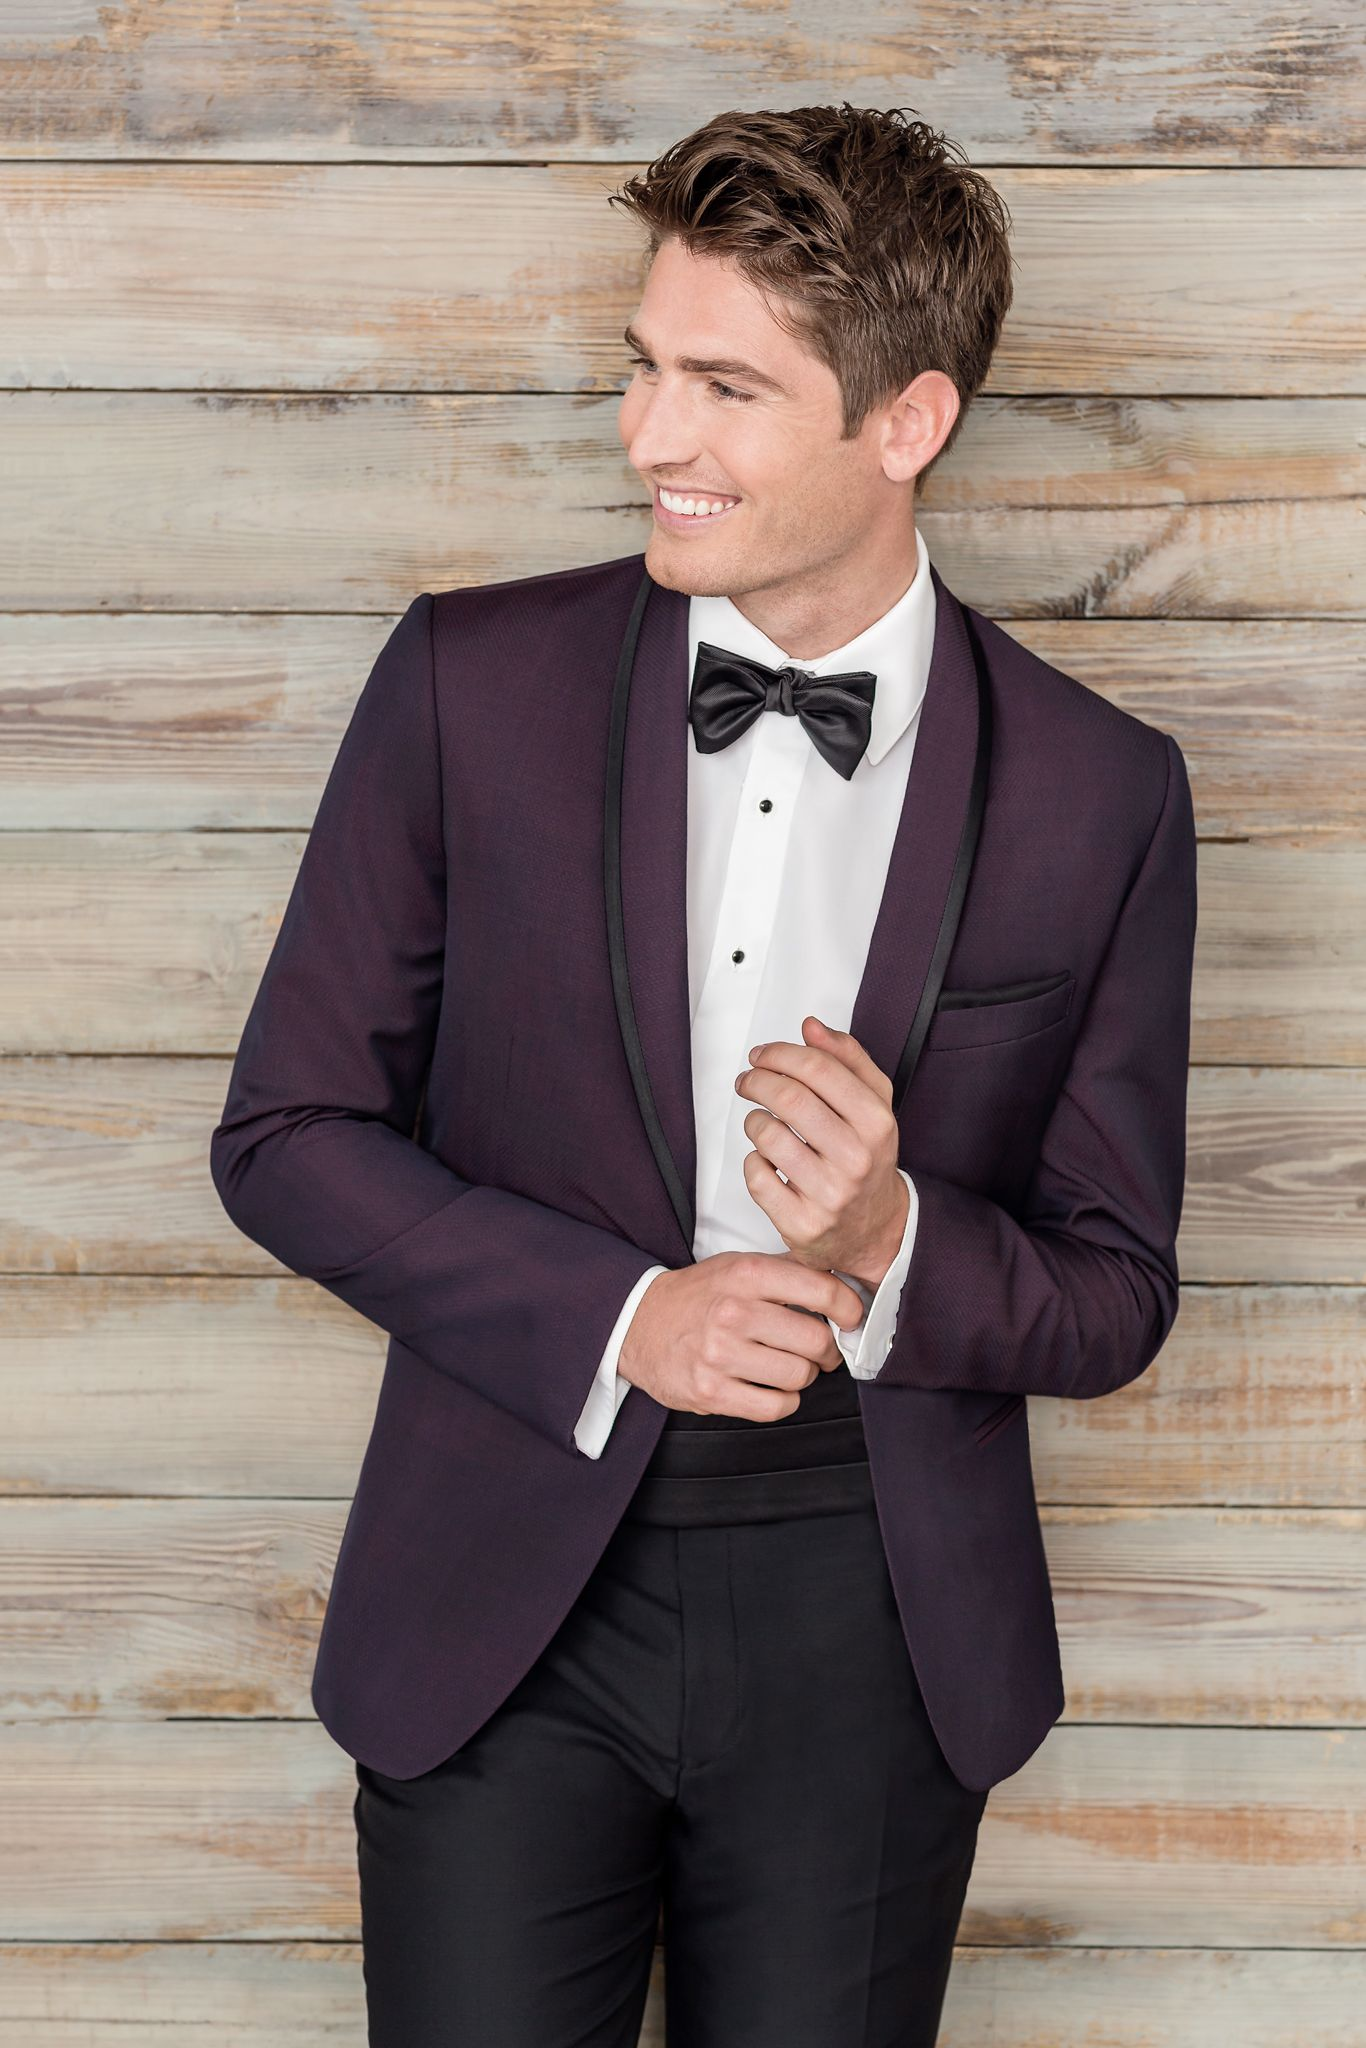 Foresto tuxedo has a variety of formal wear to outfit our clients